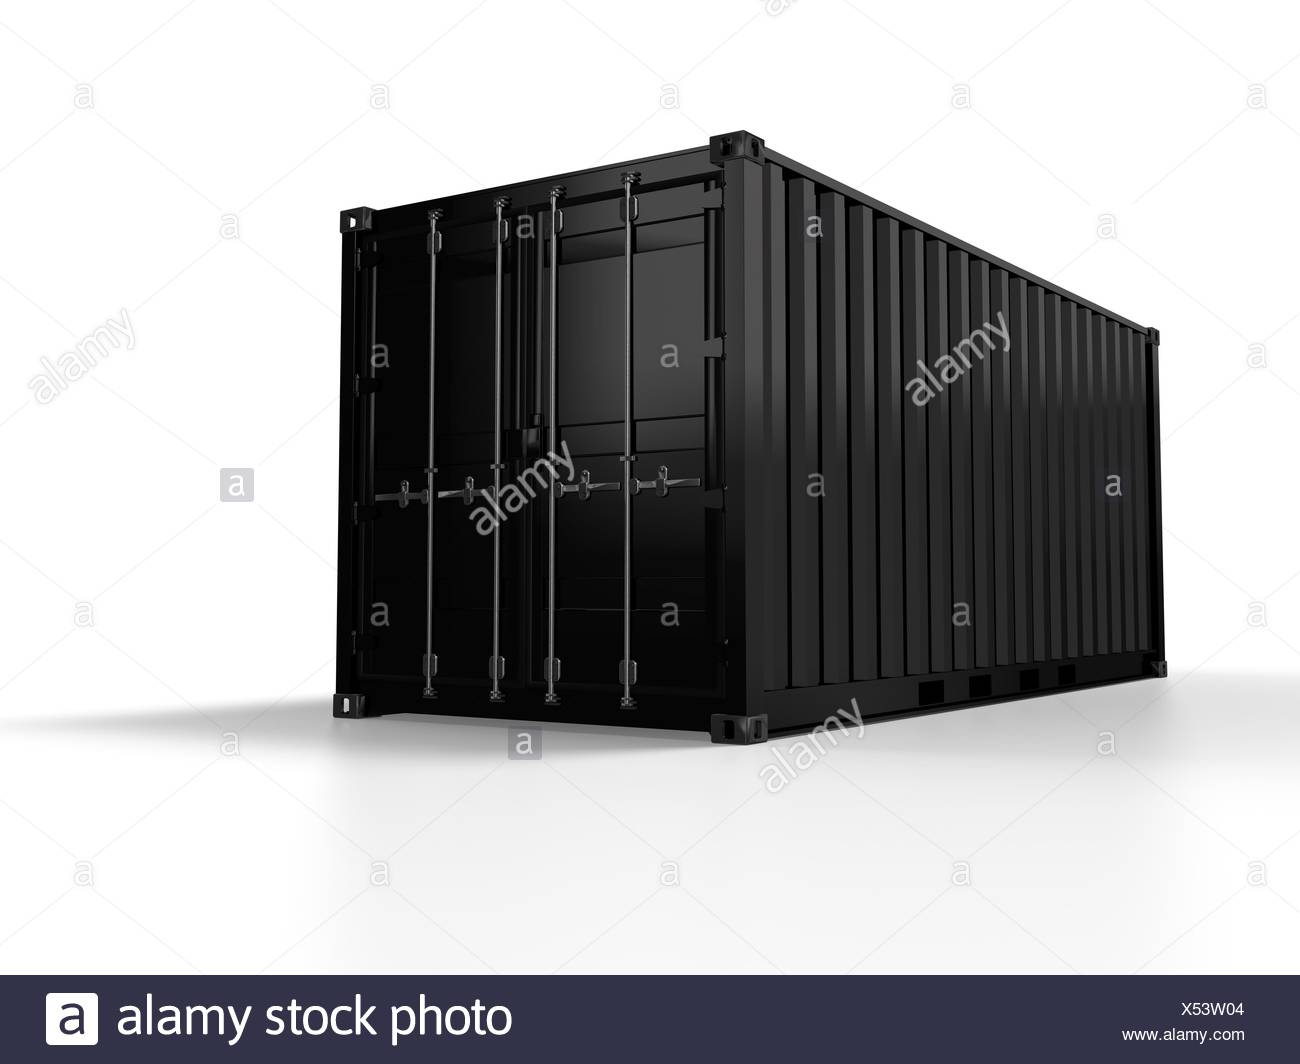 container - Stock Image